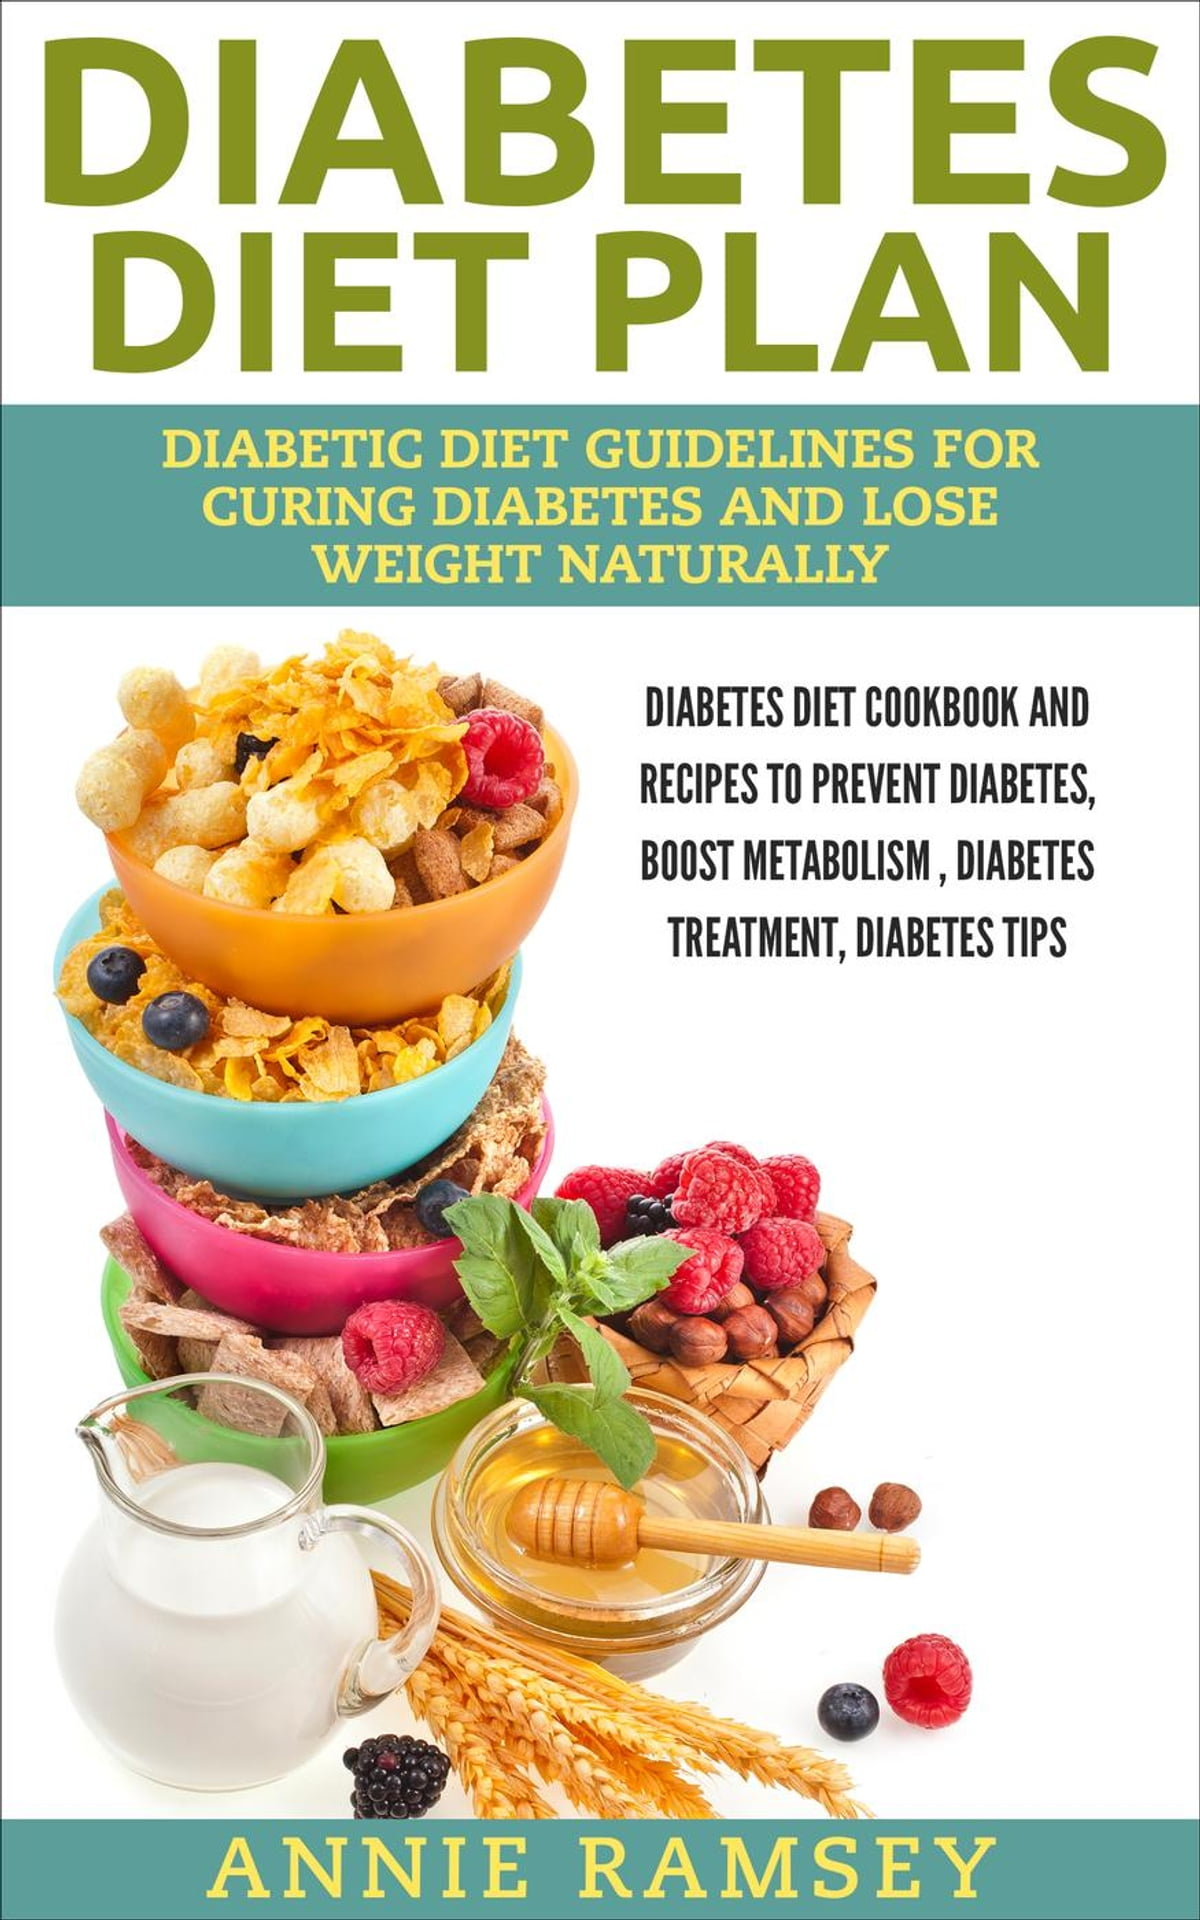 Diabetest Plan Diabetict Guidelines For Curing